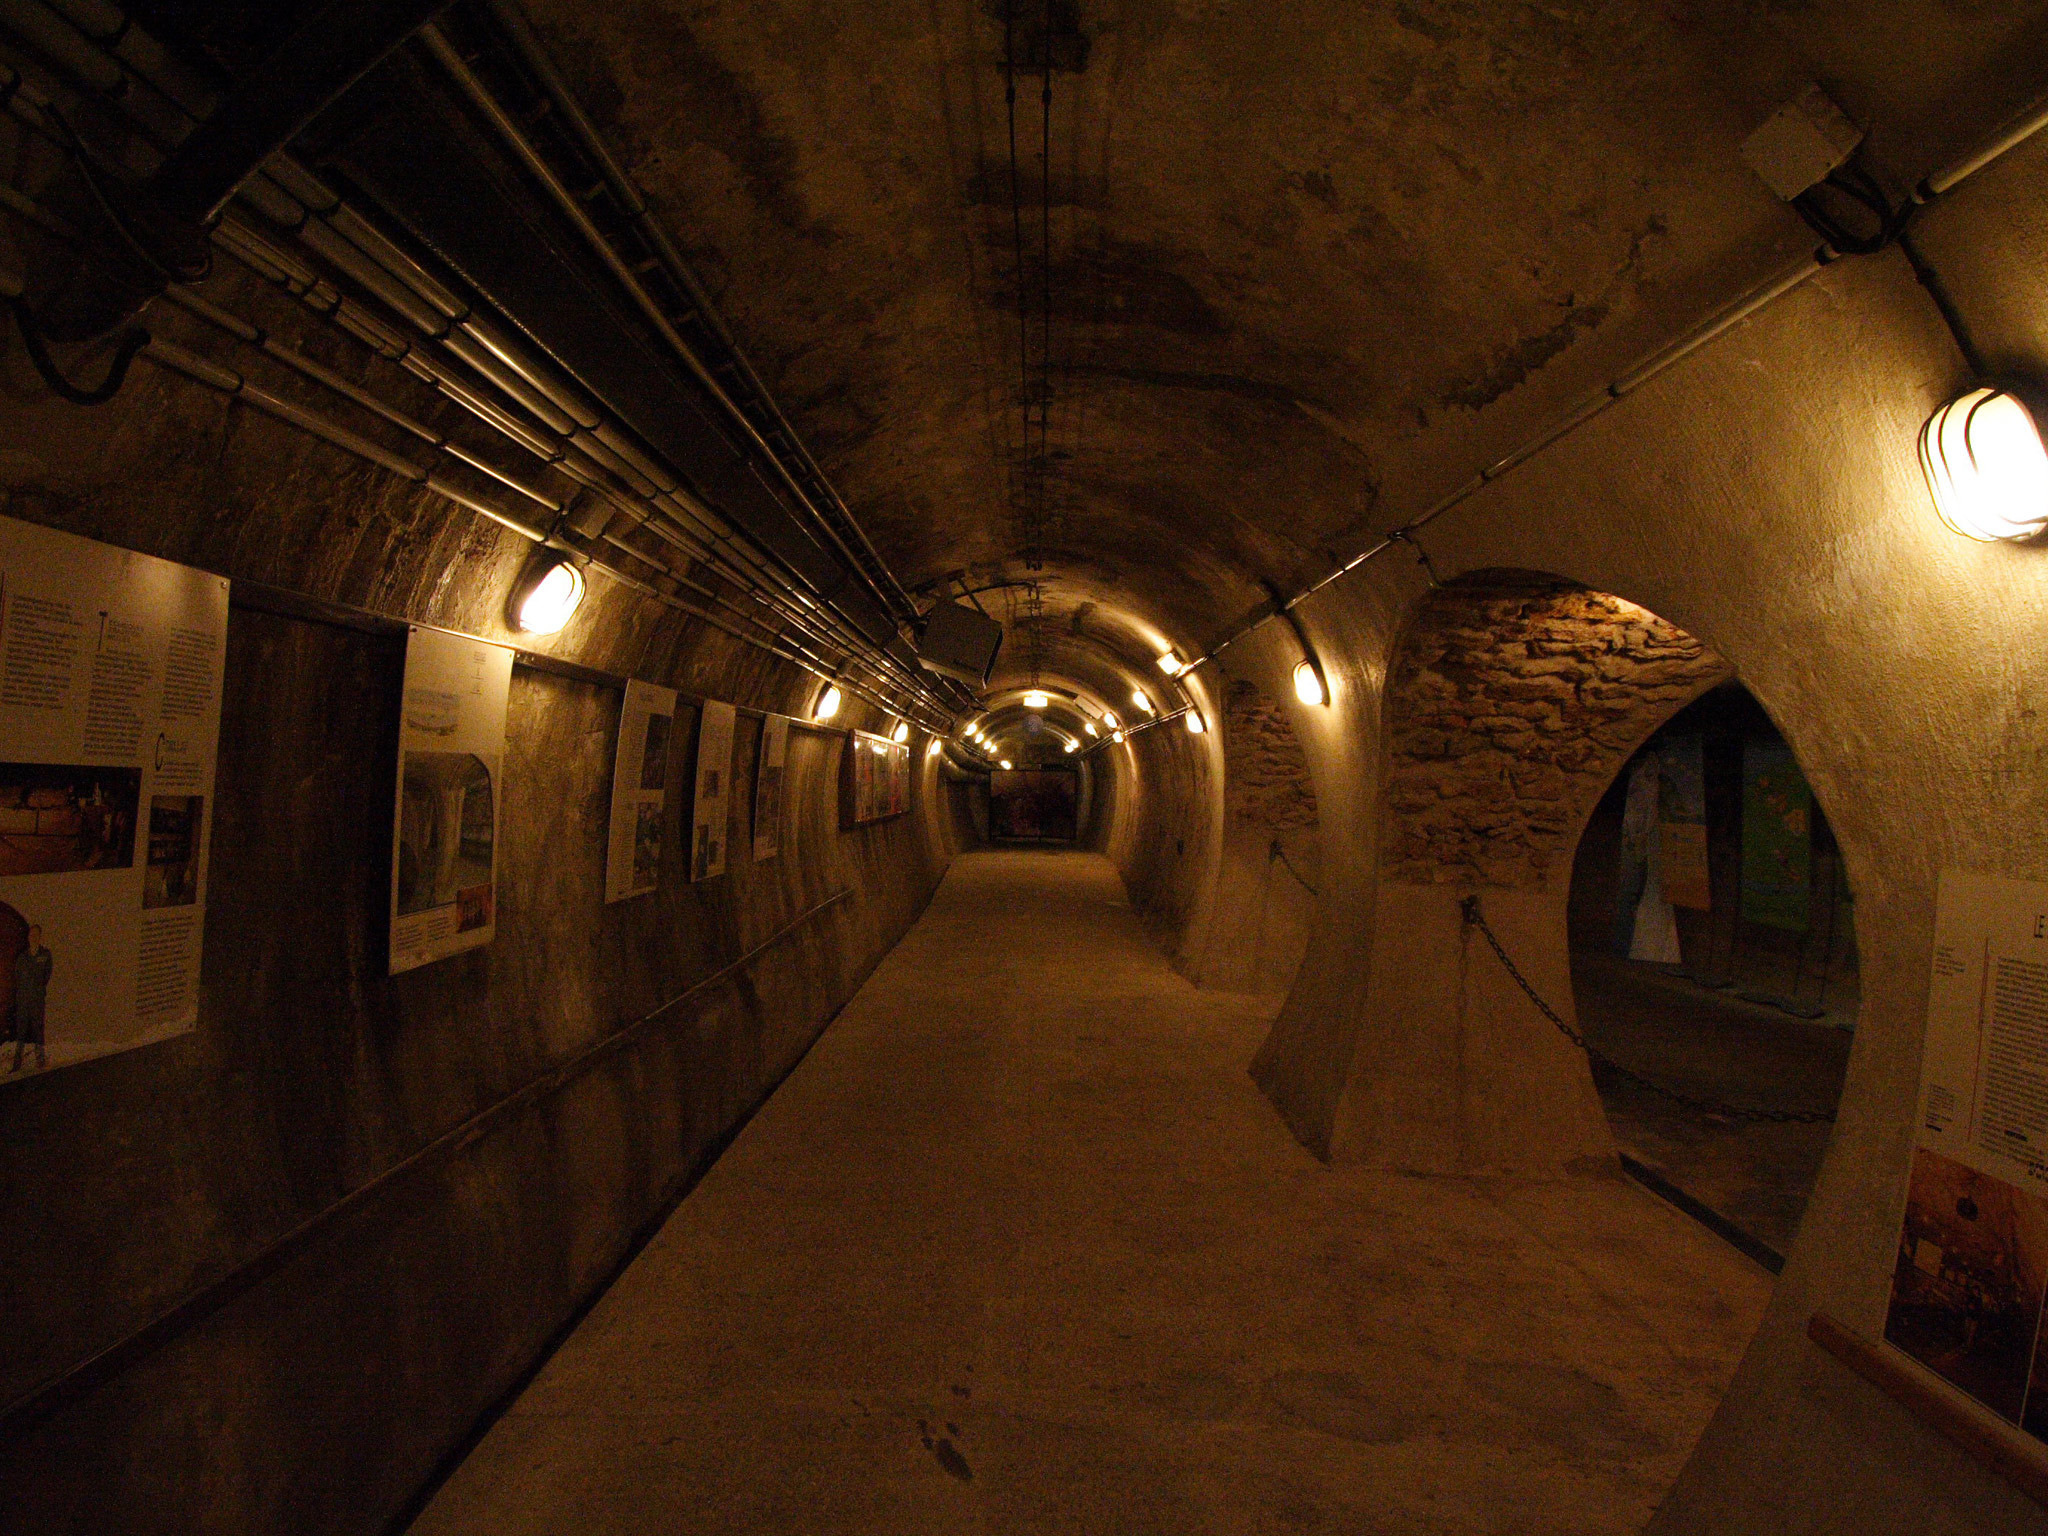 Looking down a sewer at the Musée des Égouts